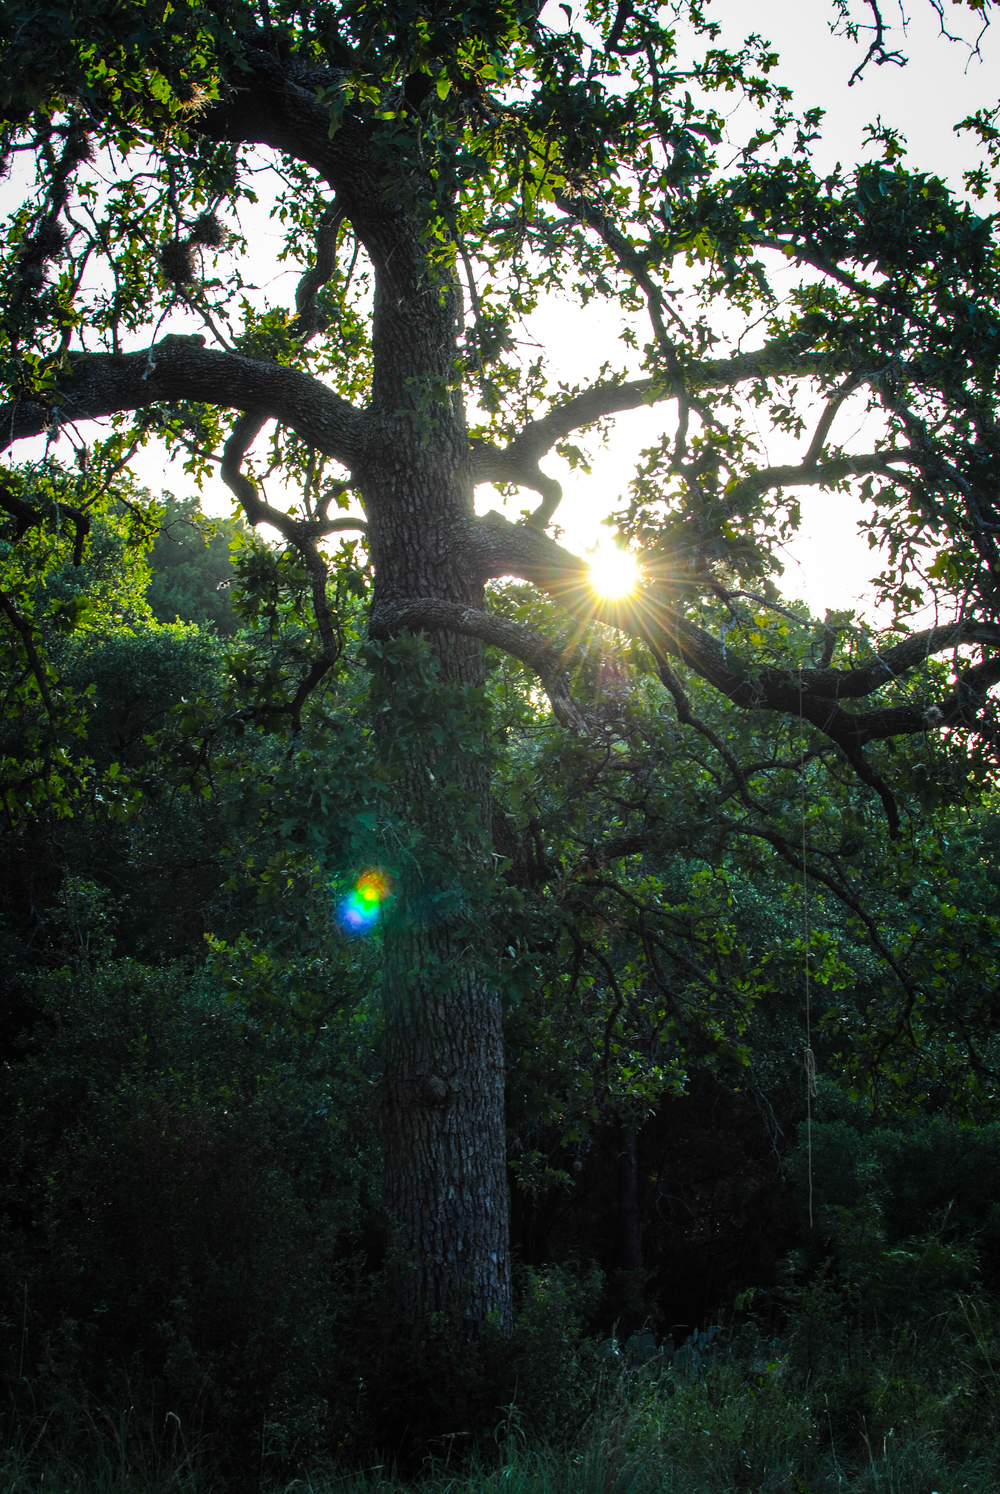 The sun peeks through a cluster of trees at Krause Springs campgrounds.